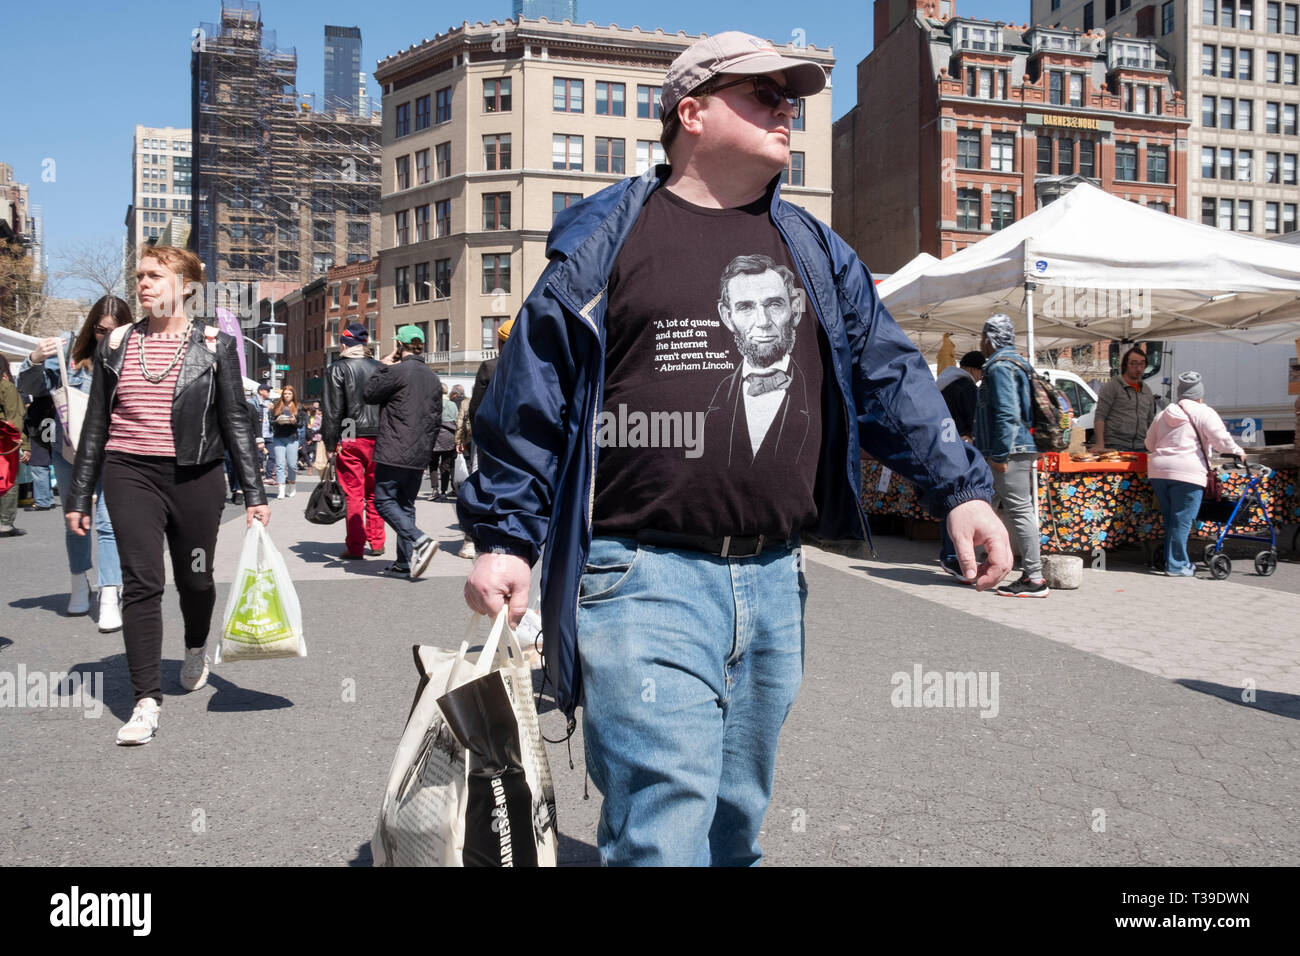 A young man shopping and wearing an Abraham Lincoln t shirt warning that not all of the internet is true. At the Union Square Green Market in New York - Stock Image